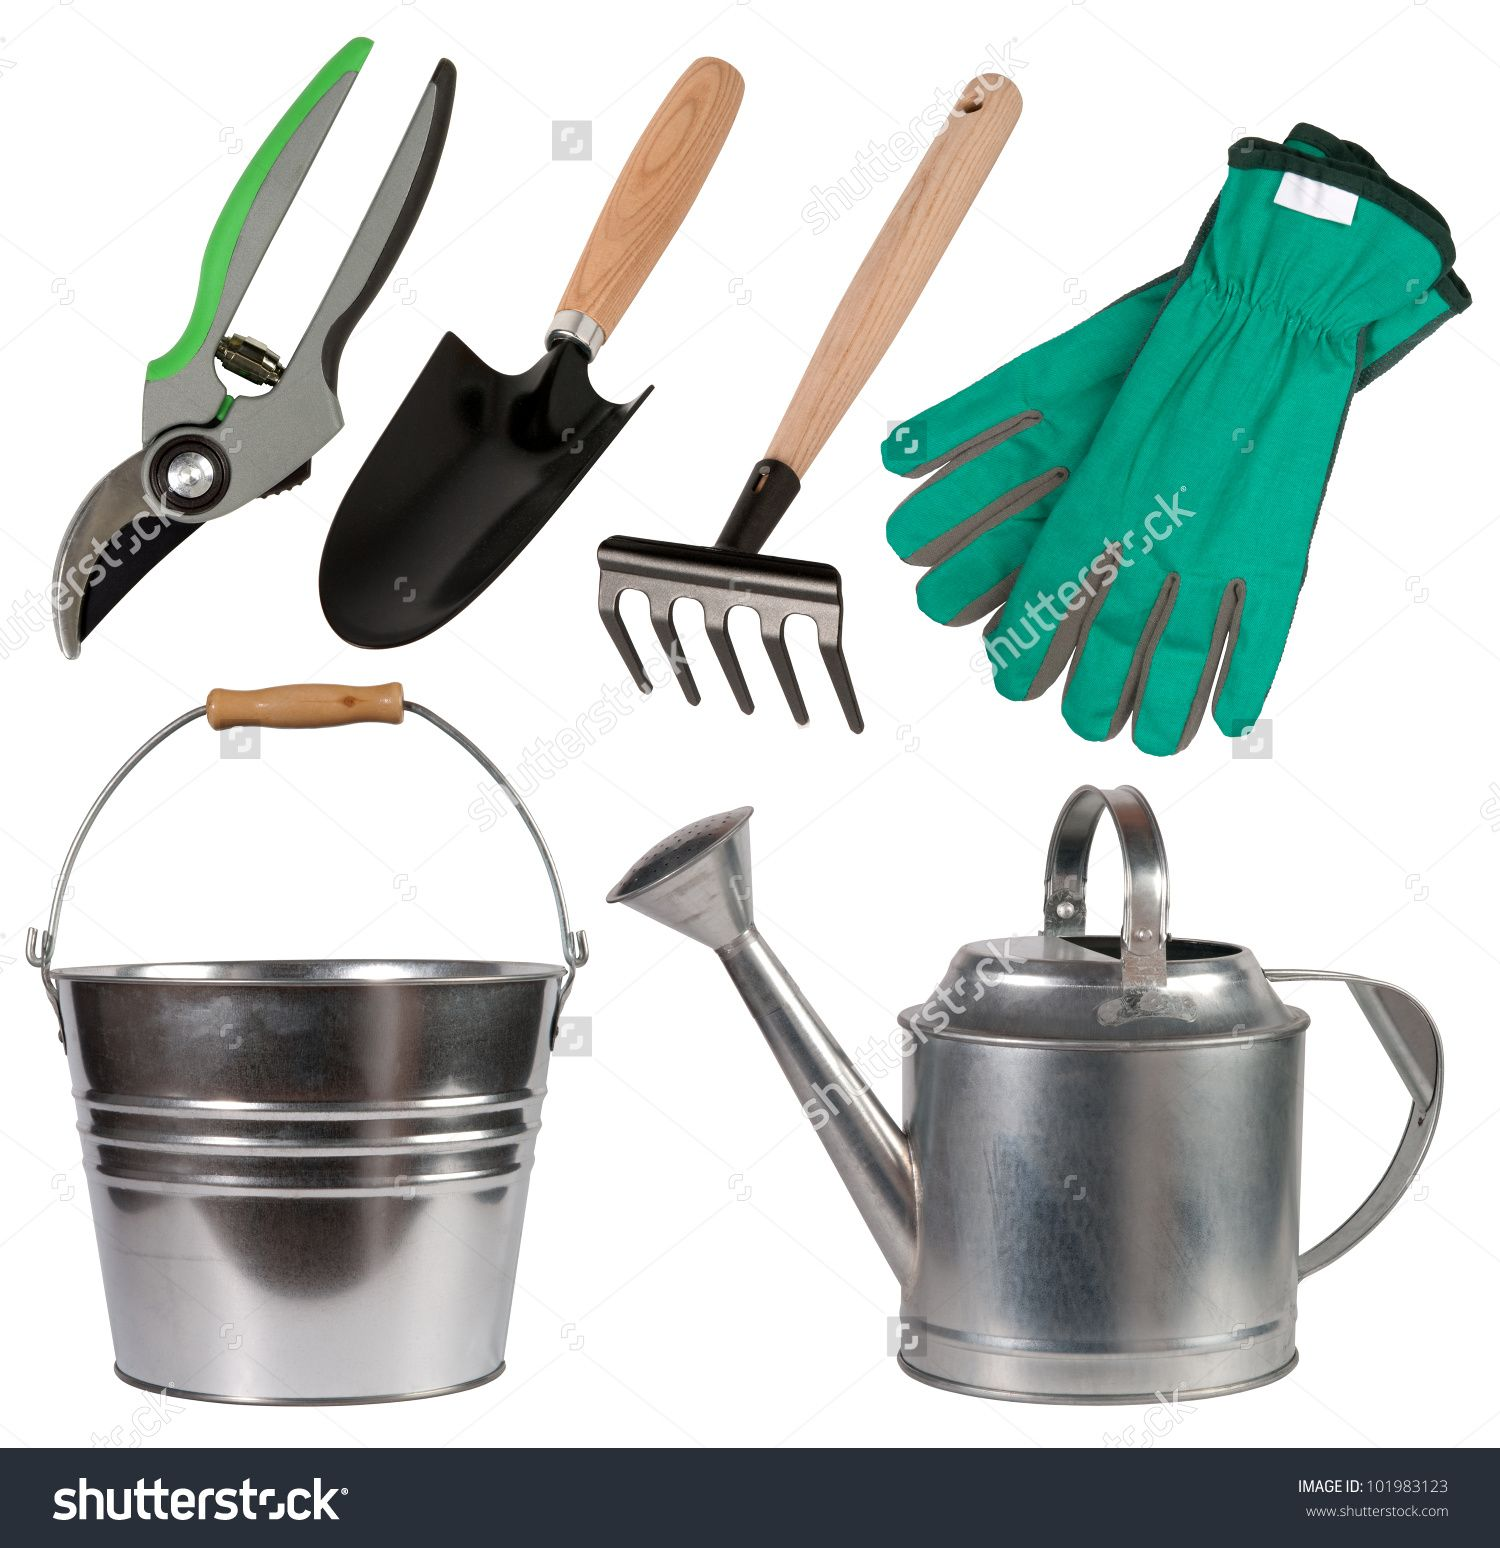 stock photo gardening tools isolated on white background